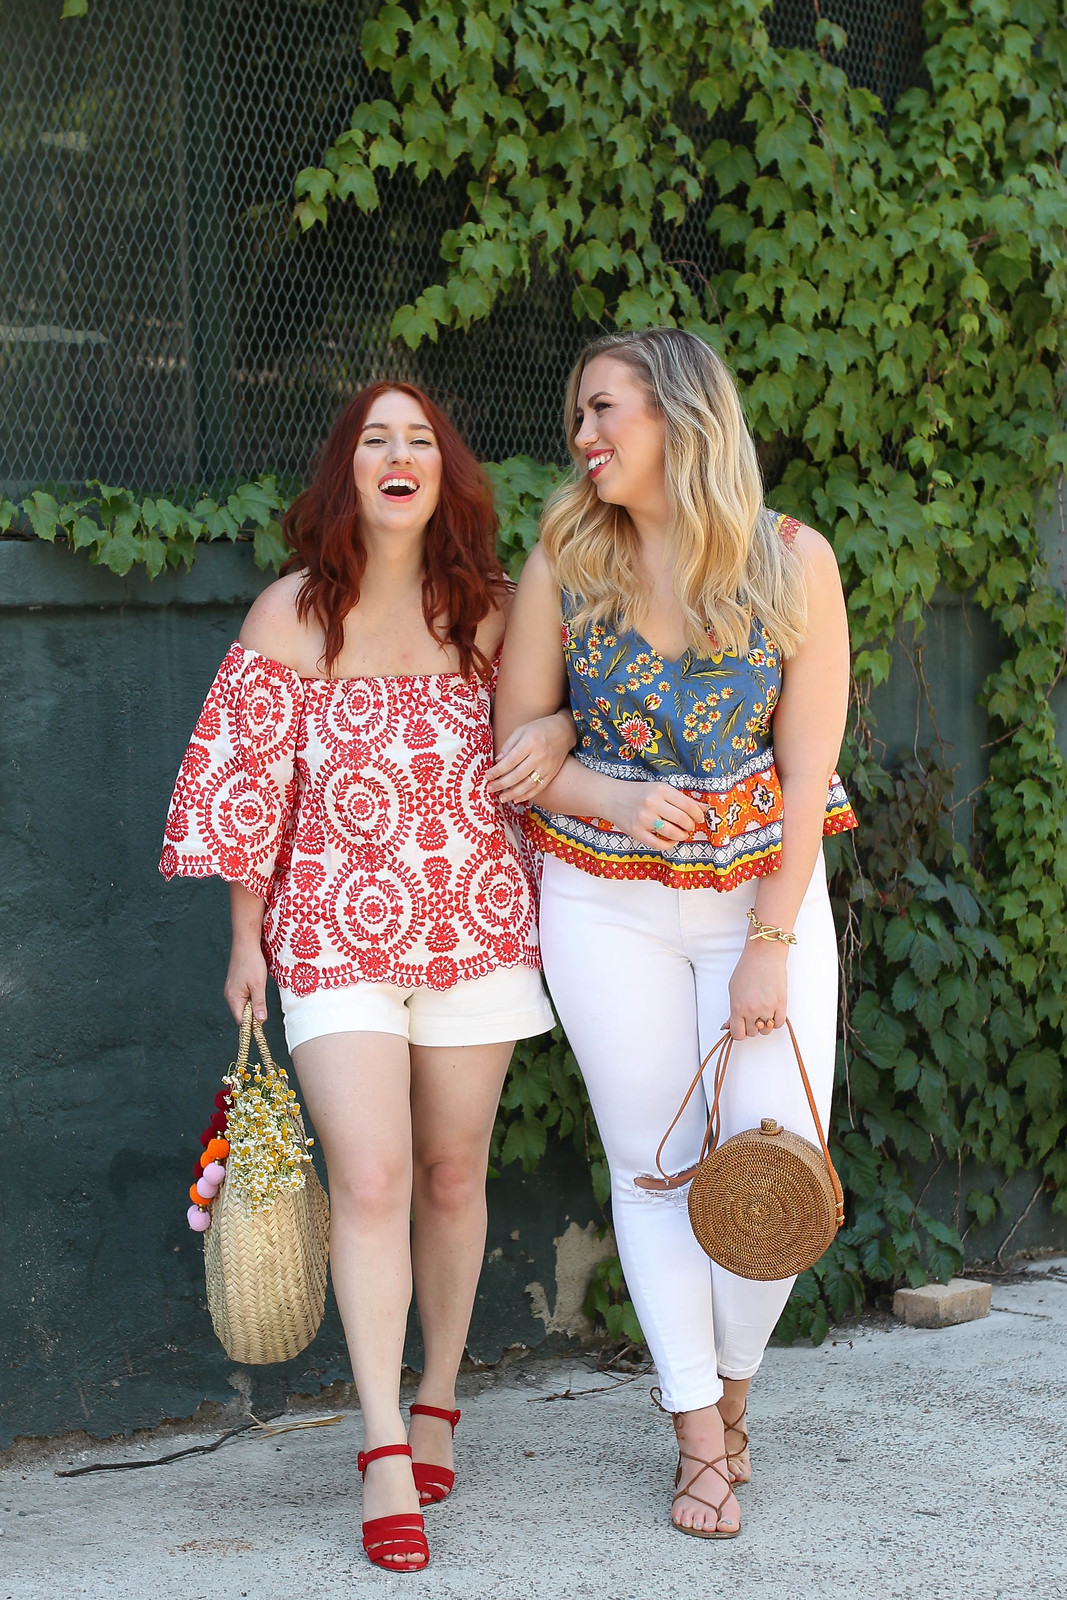 Colorful Printed Tops White Jeans Straw Bags Summer Outfit Inspiration